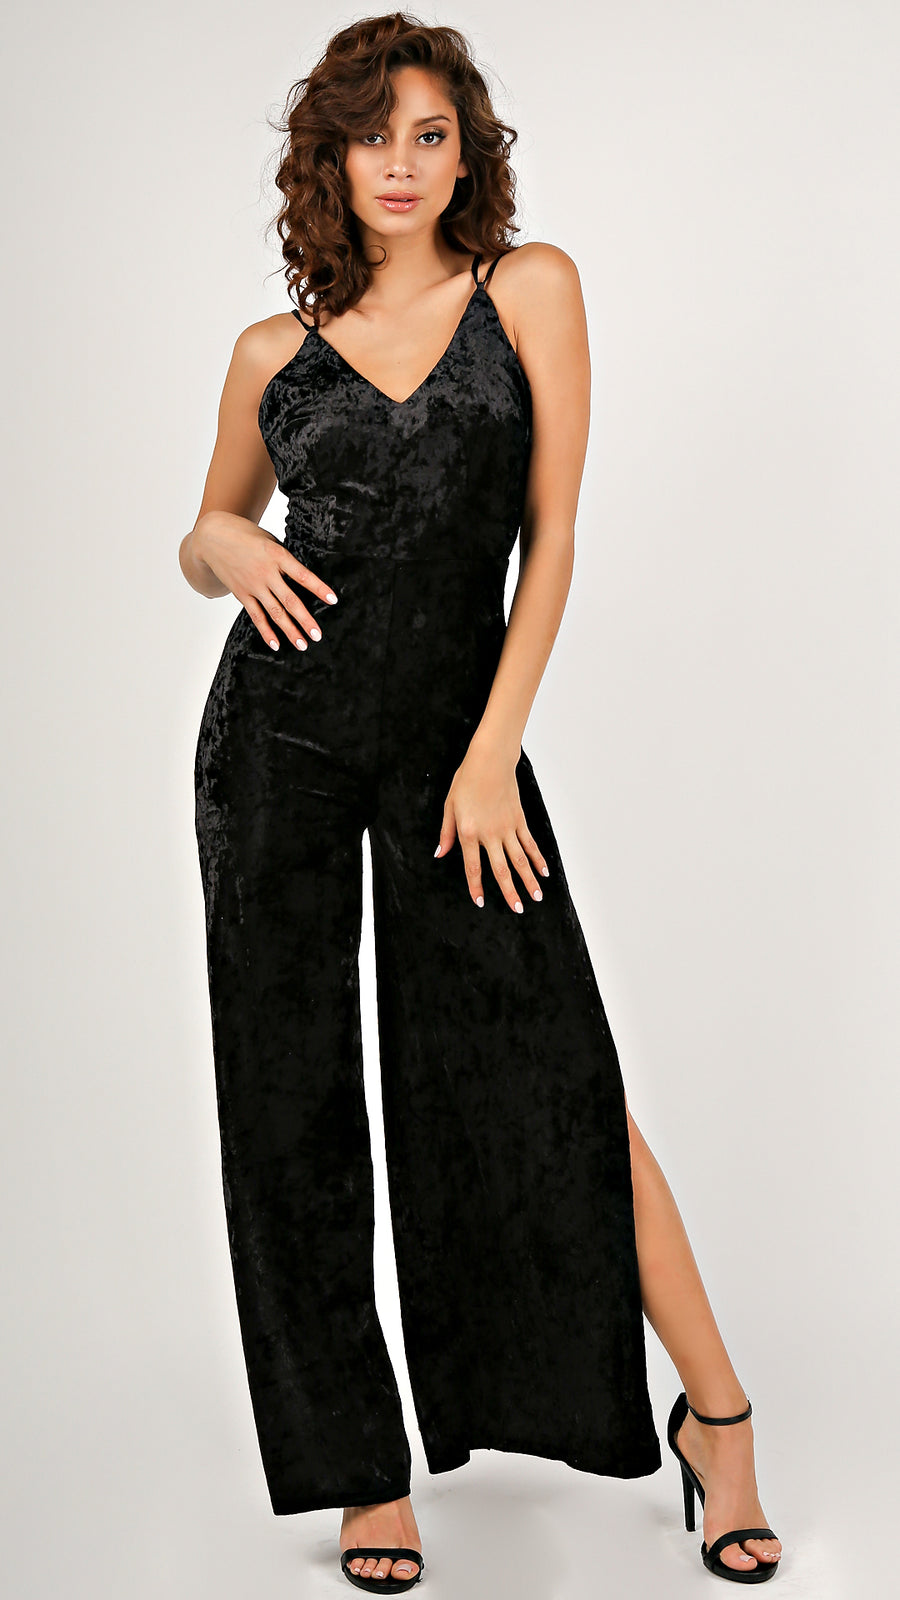 Leading Lady's Velvet Jumpsuit